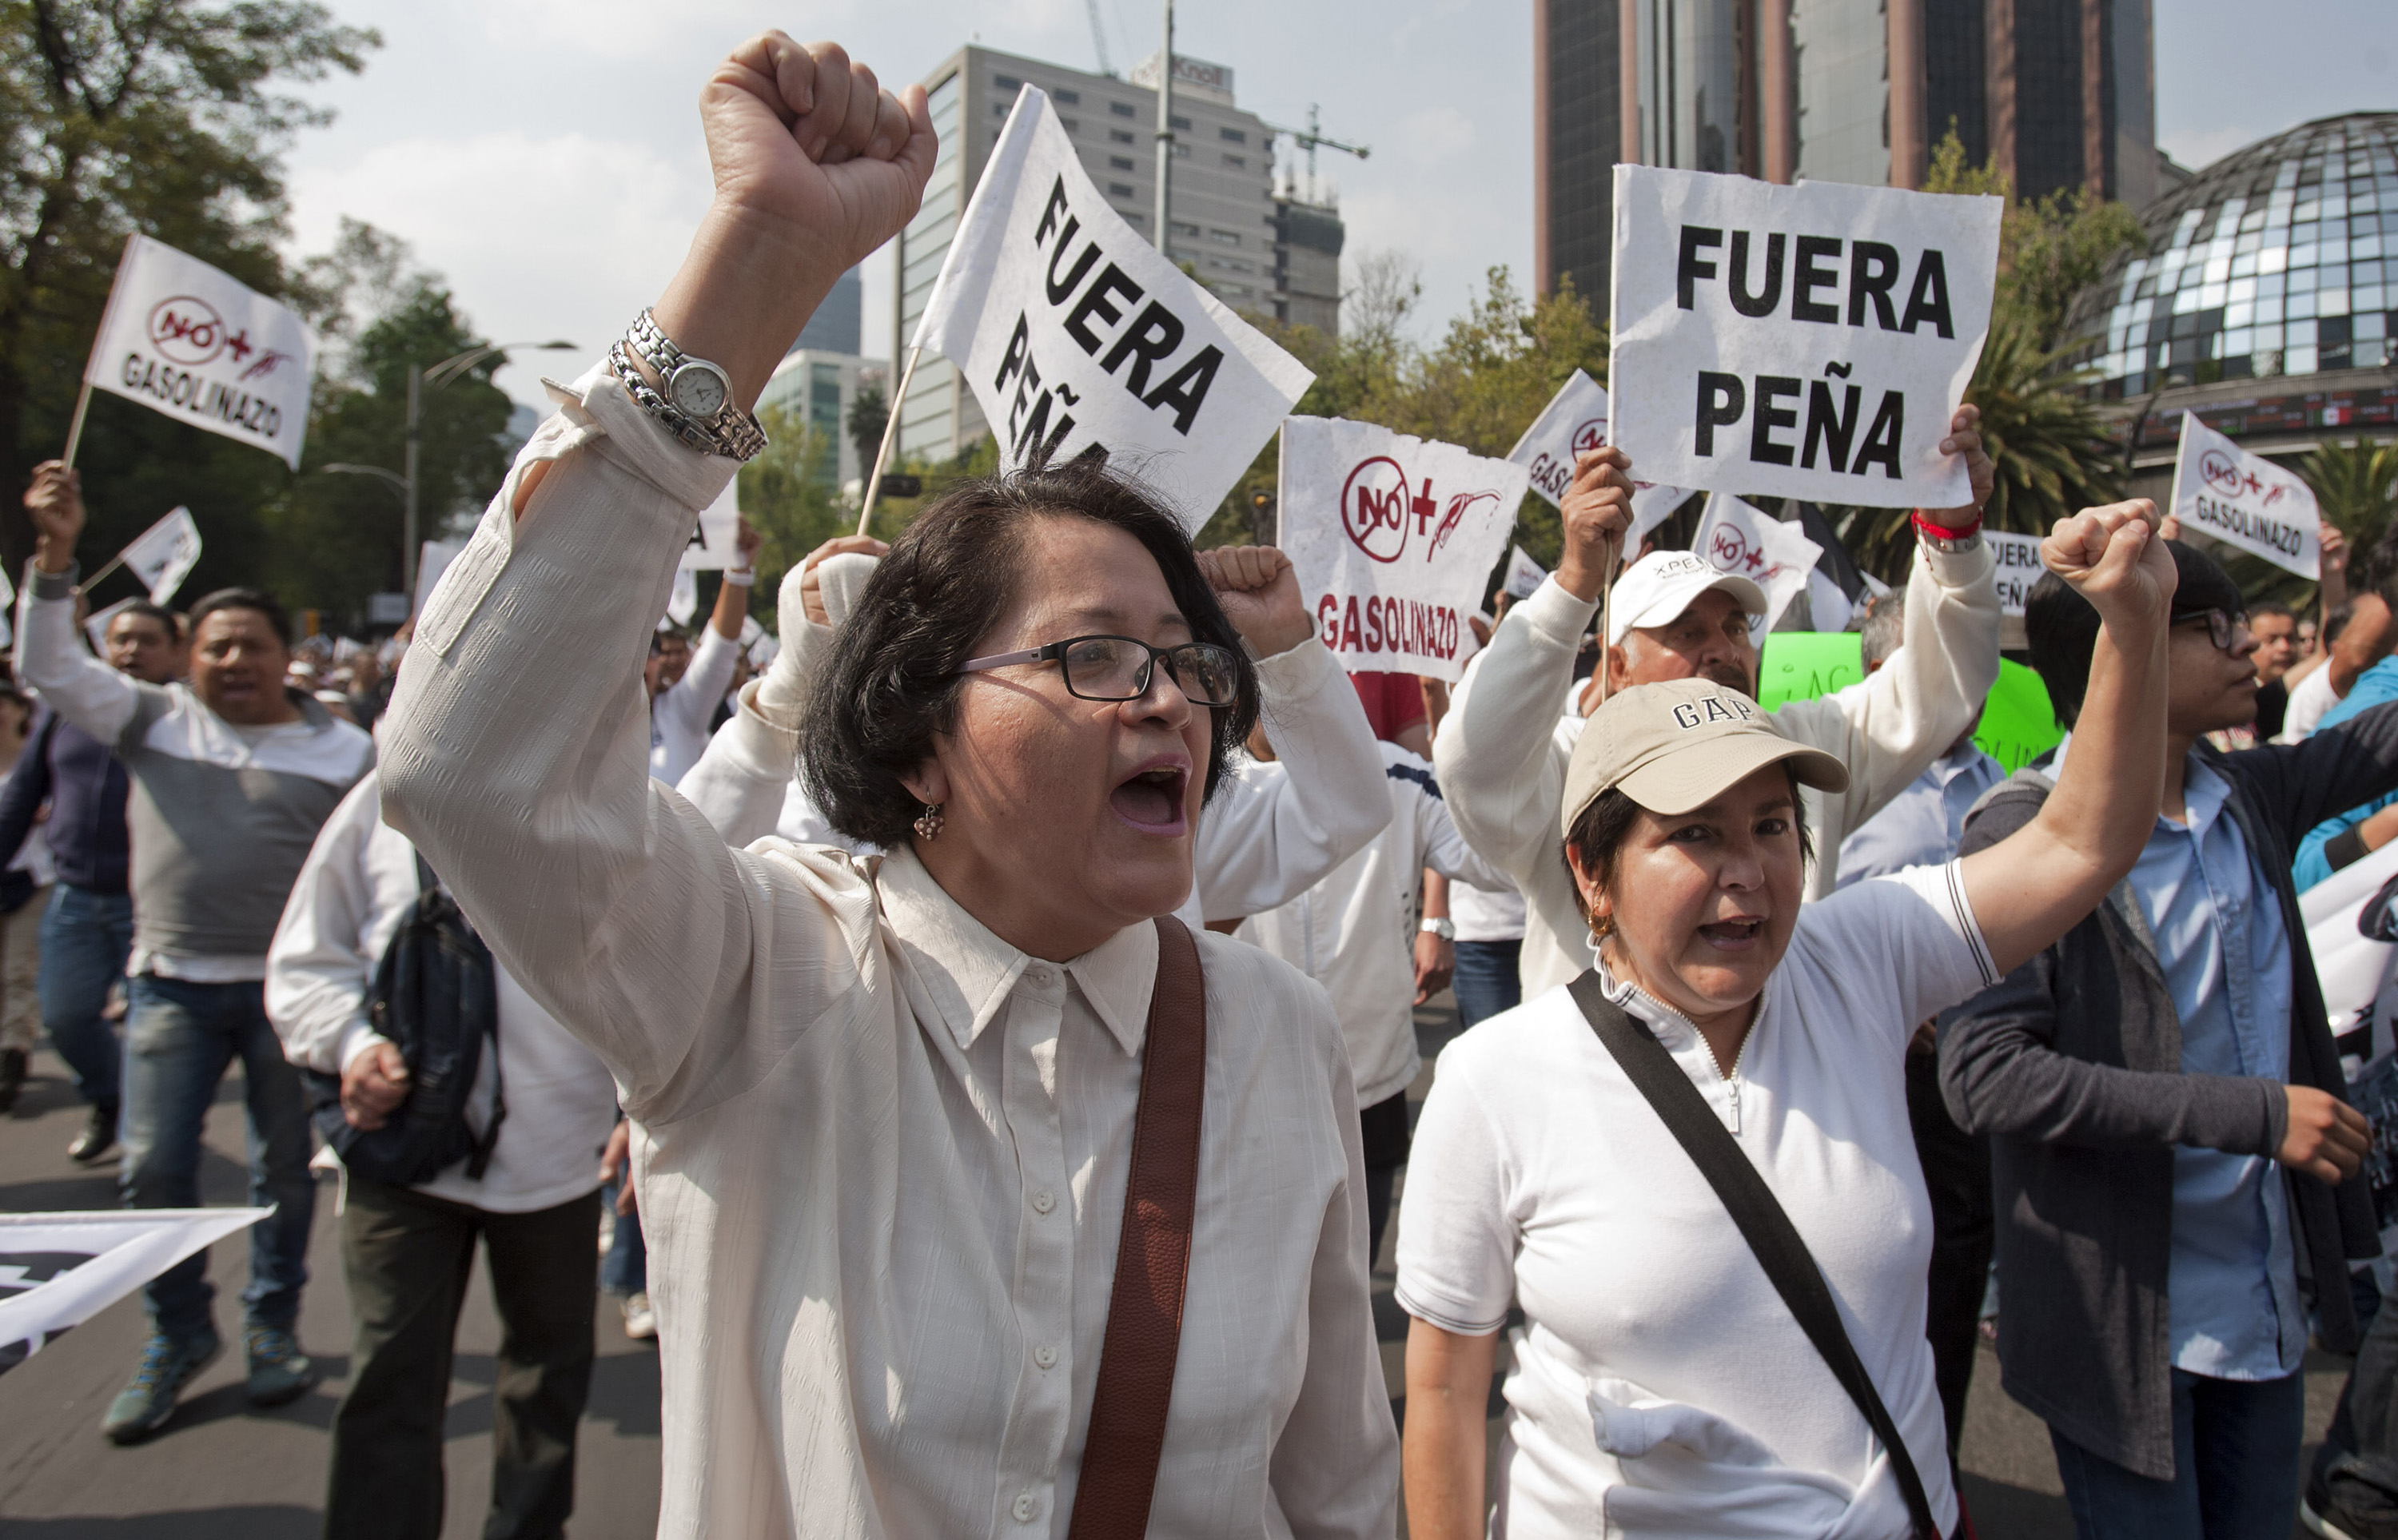 social protest in mexico essay Poverty in mexico city persists although mexico has the 13 th largest economy in the world,  poverty is one of the many social issues that the country struggles to .